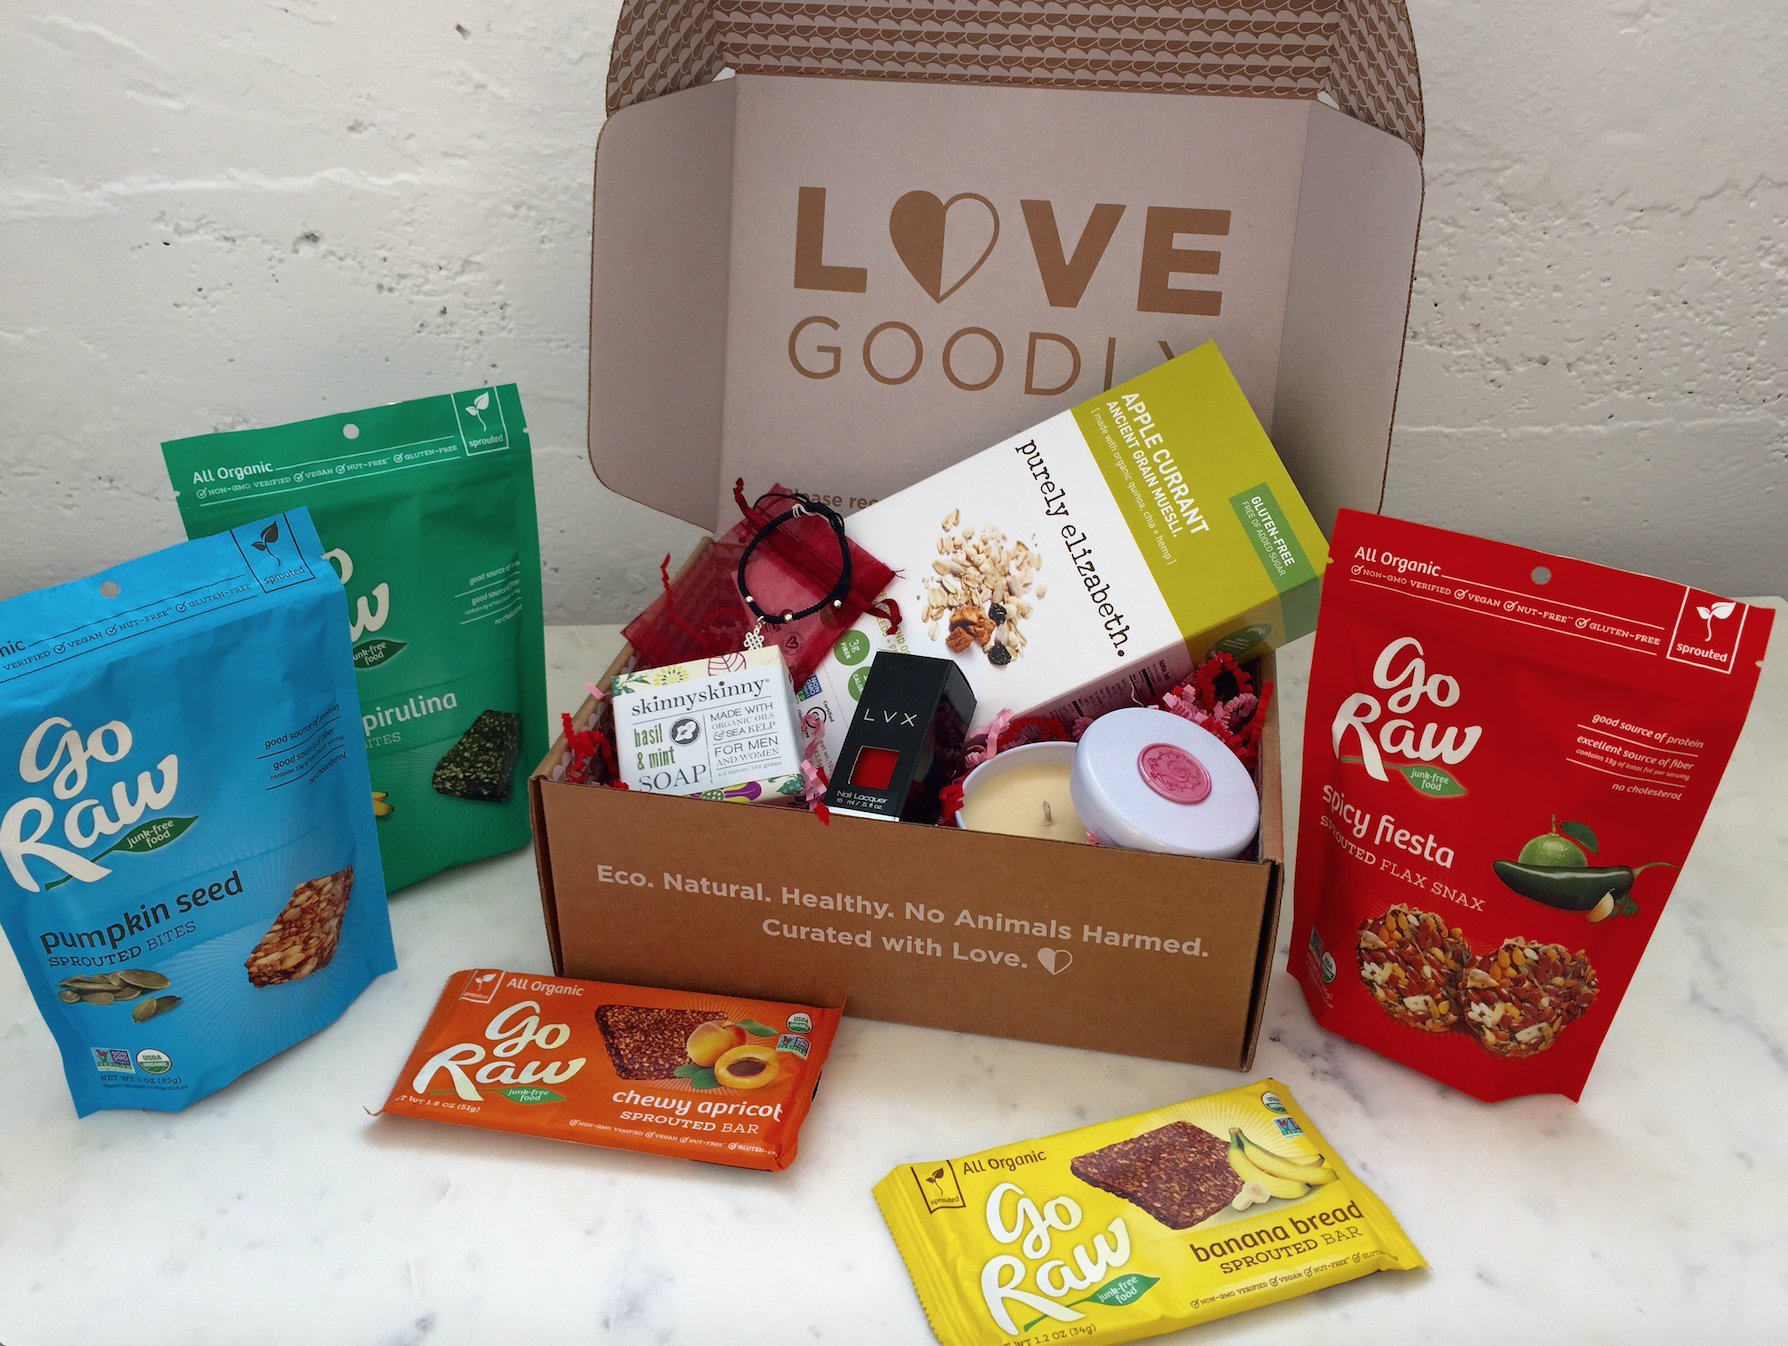 Love Goodly Go Raw giveaway